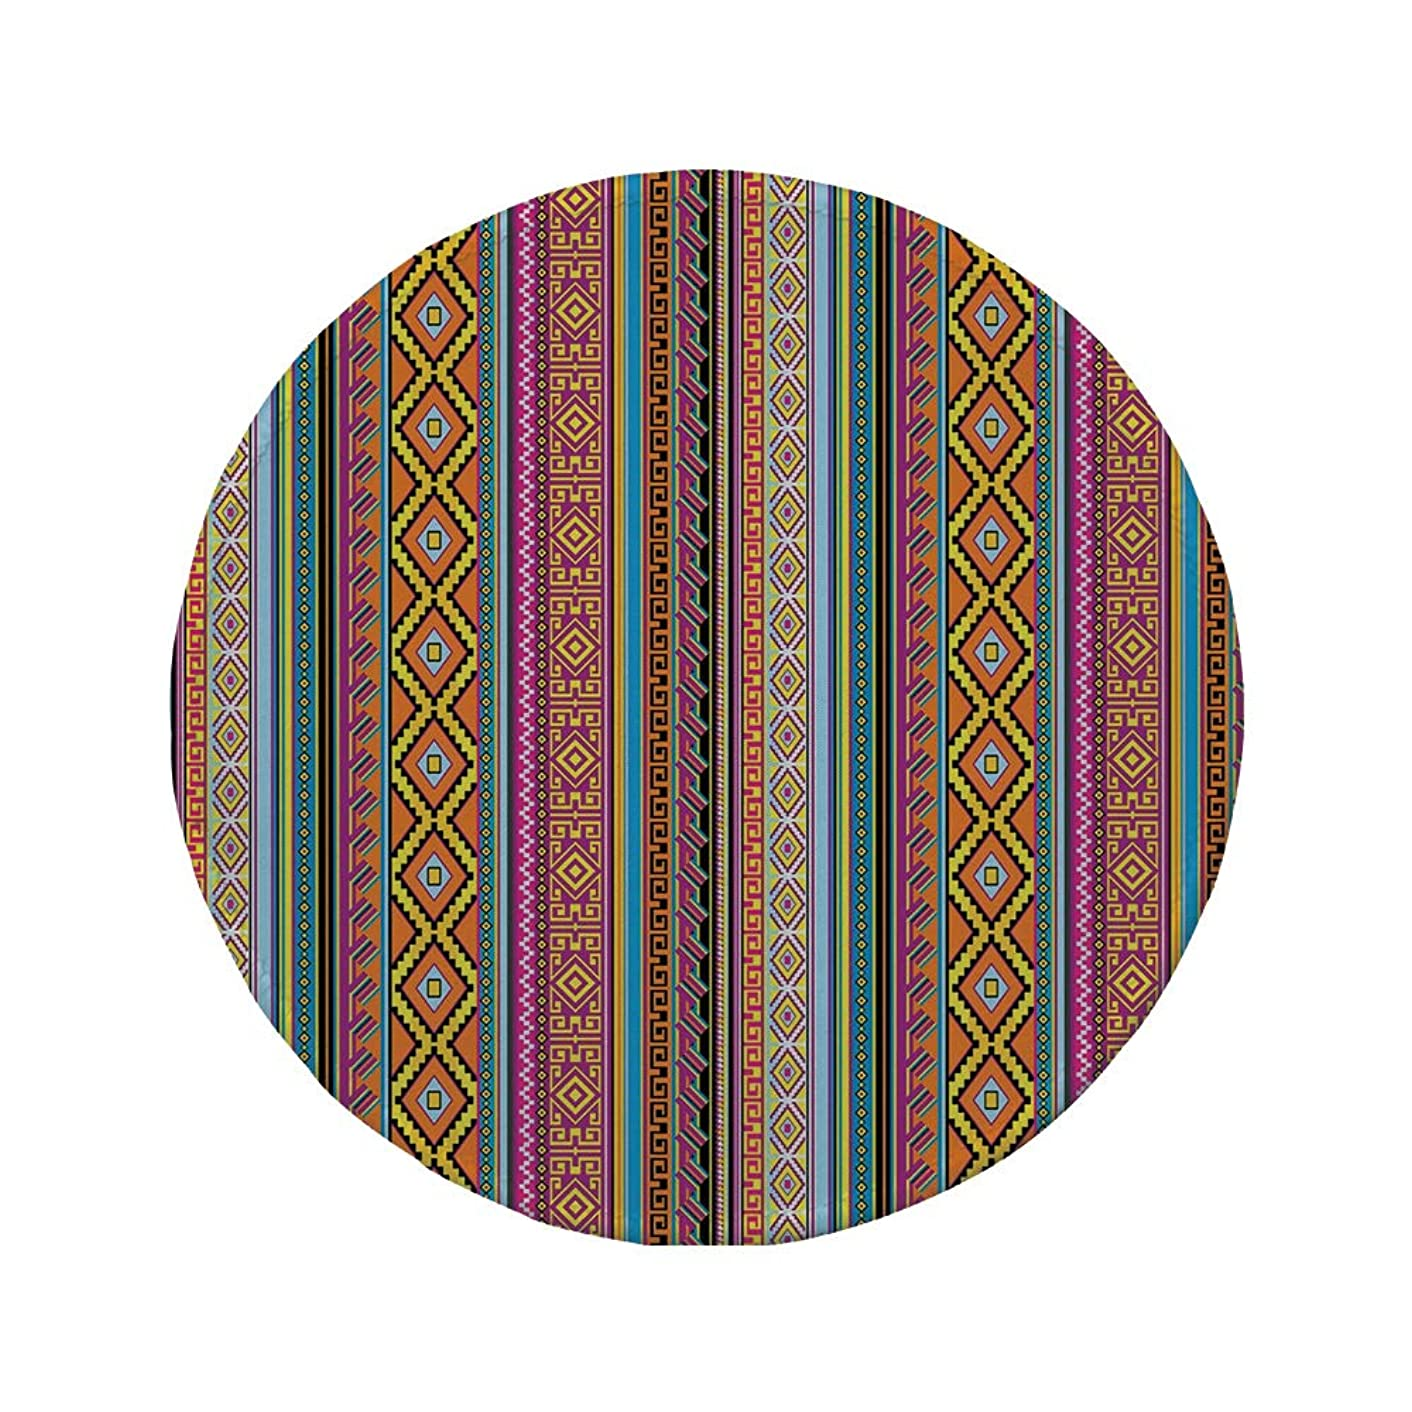 Non-Slip Rubber Round Mouse Pad,Ethnic,Folk Aztec Pattern with Native American Tribal Effects and Geometric Forms Artwork Decorative,Multicolor,11.8